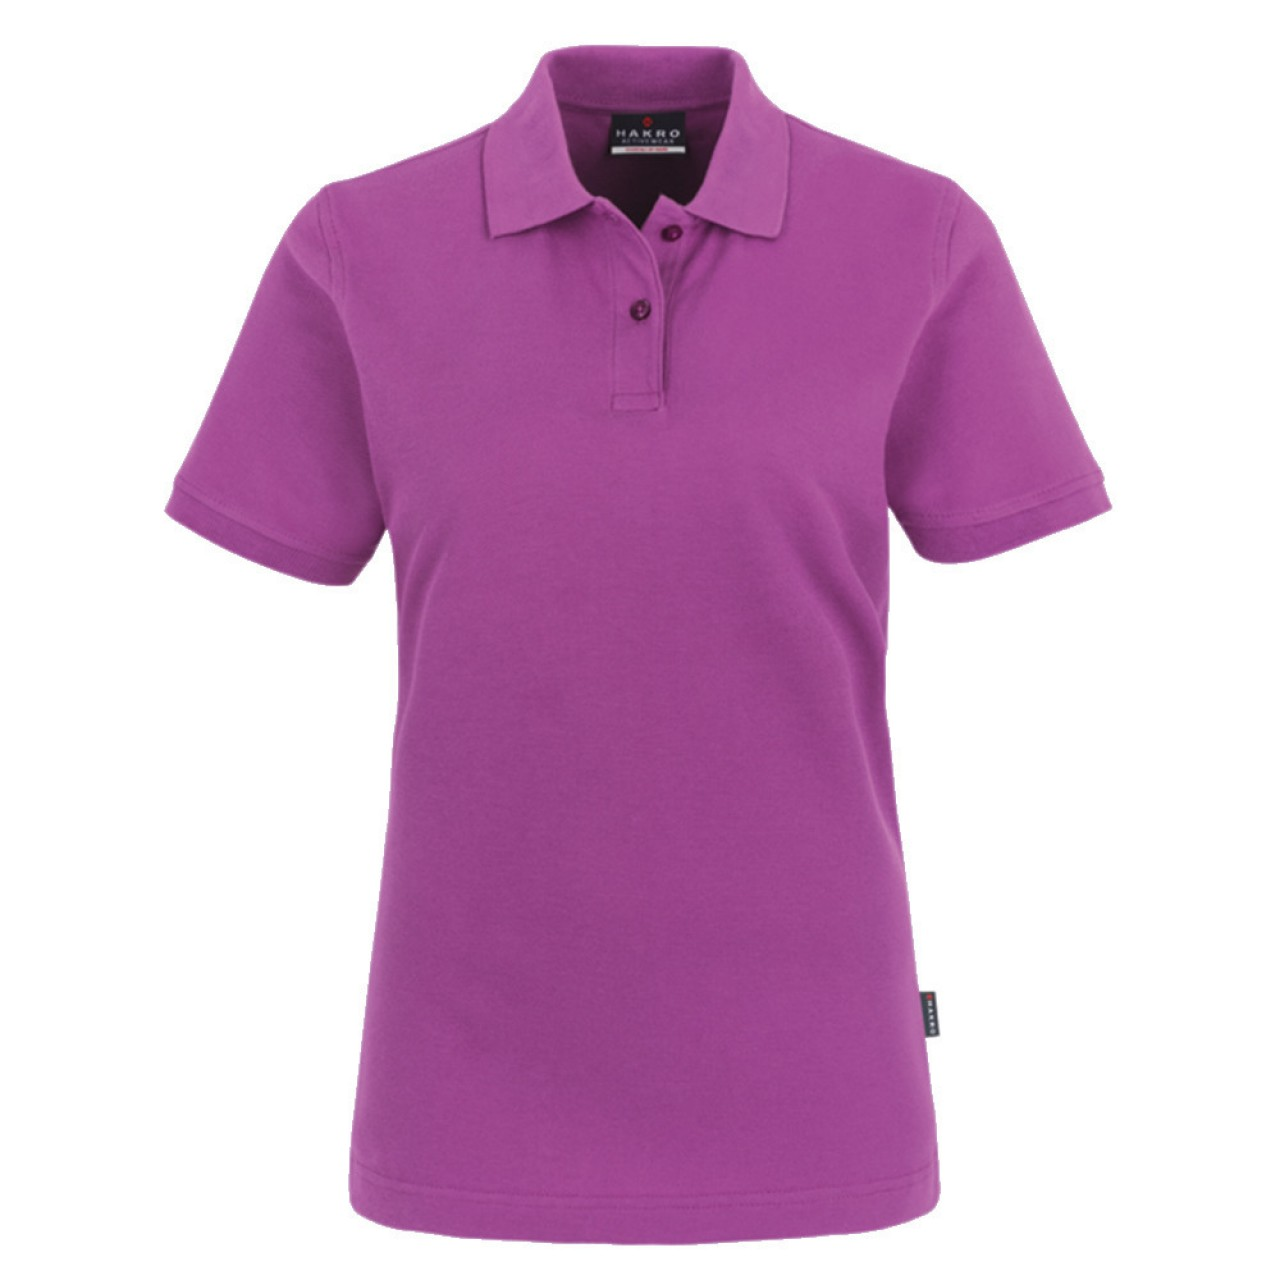 Damen Polo-Shirt Top purple